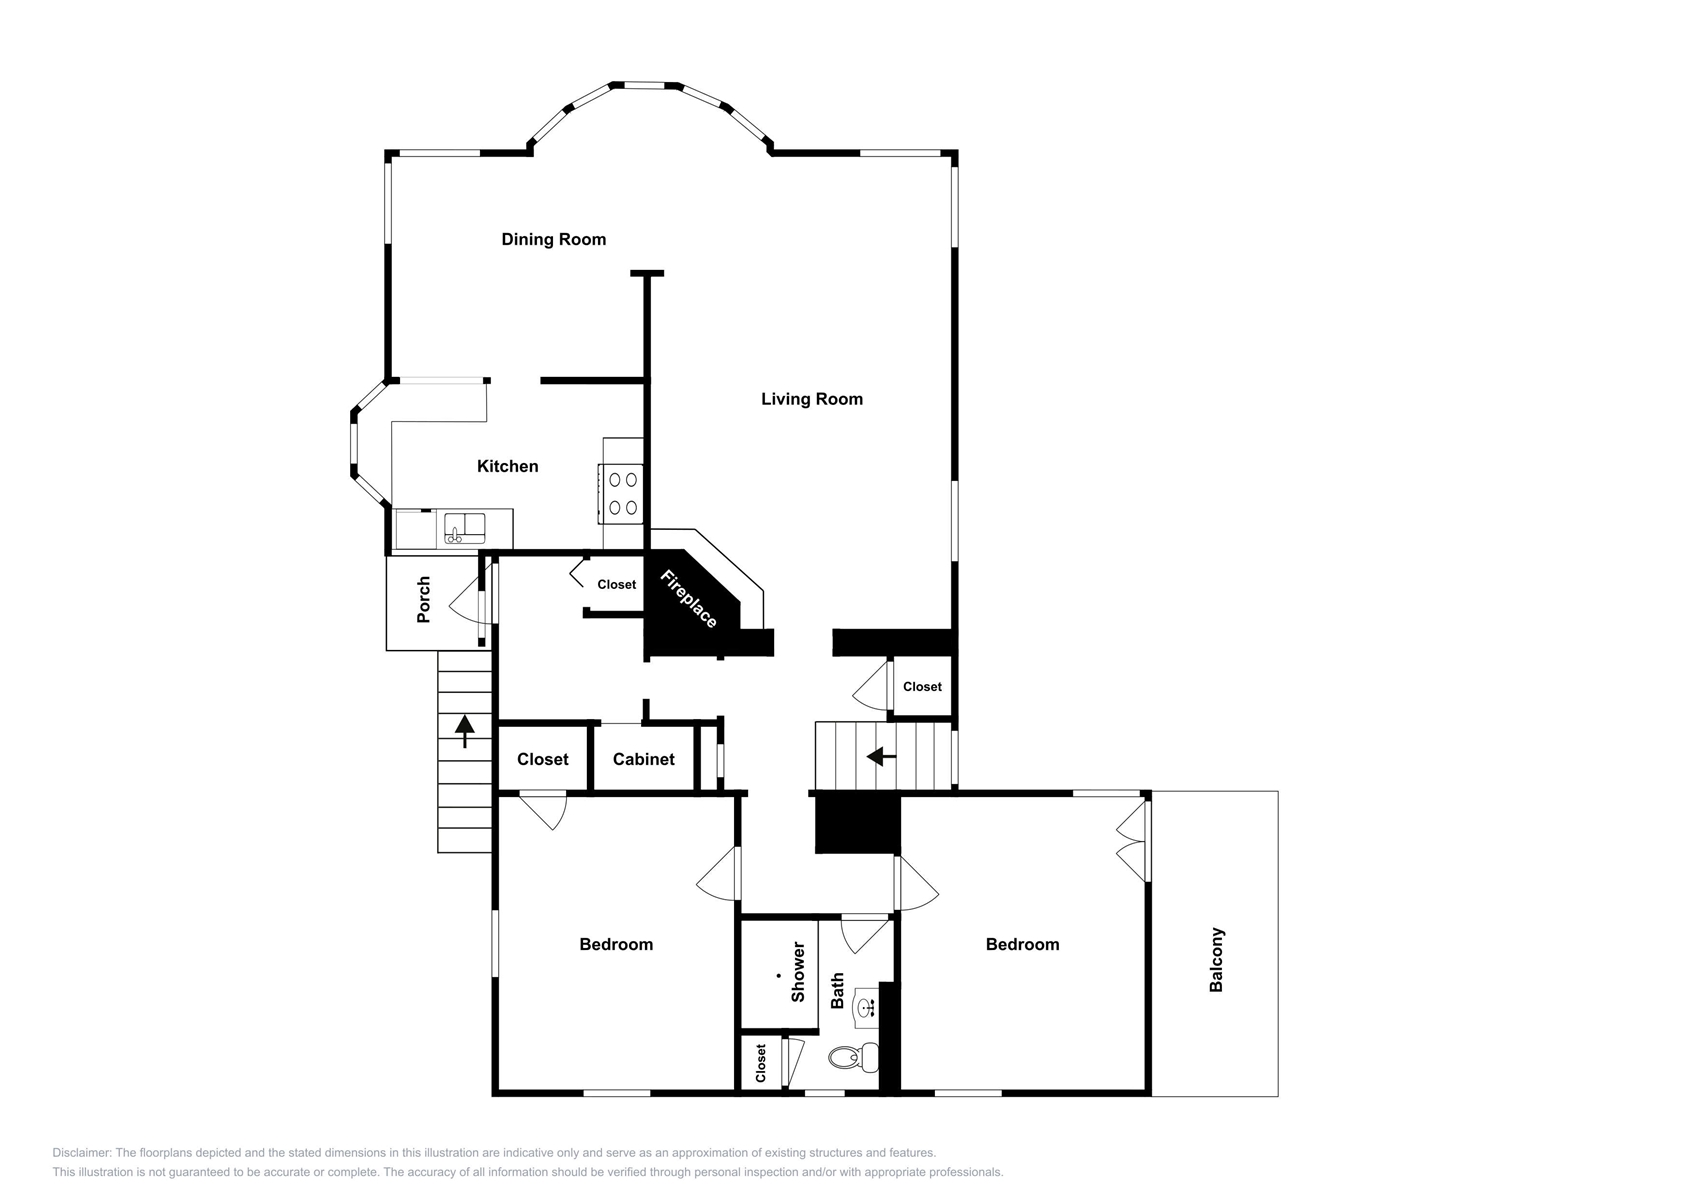 Floor Plan for Bay View 2BD/2BA Mission Hills Renta: Palm View Penthouse